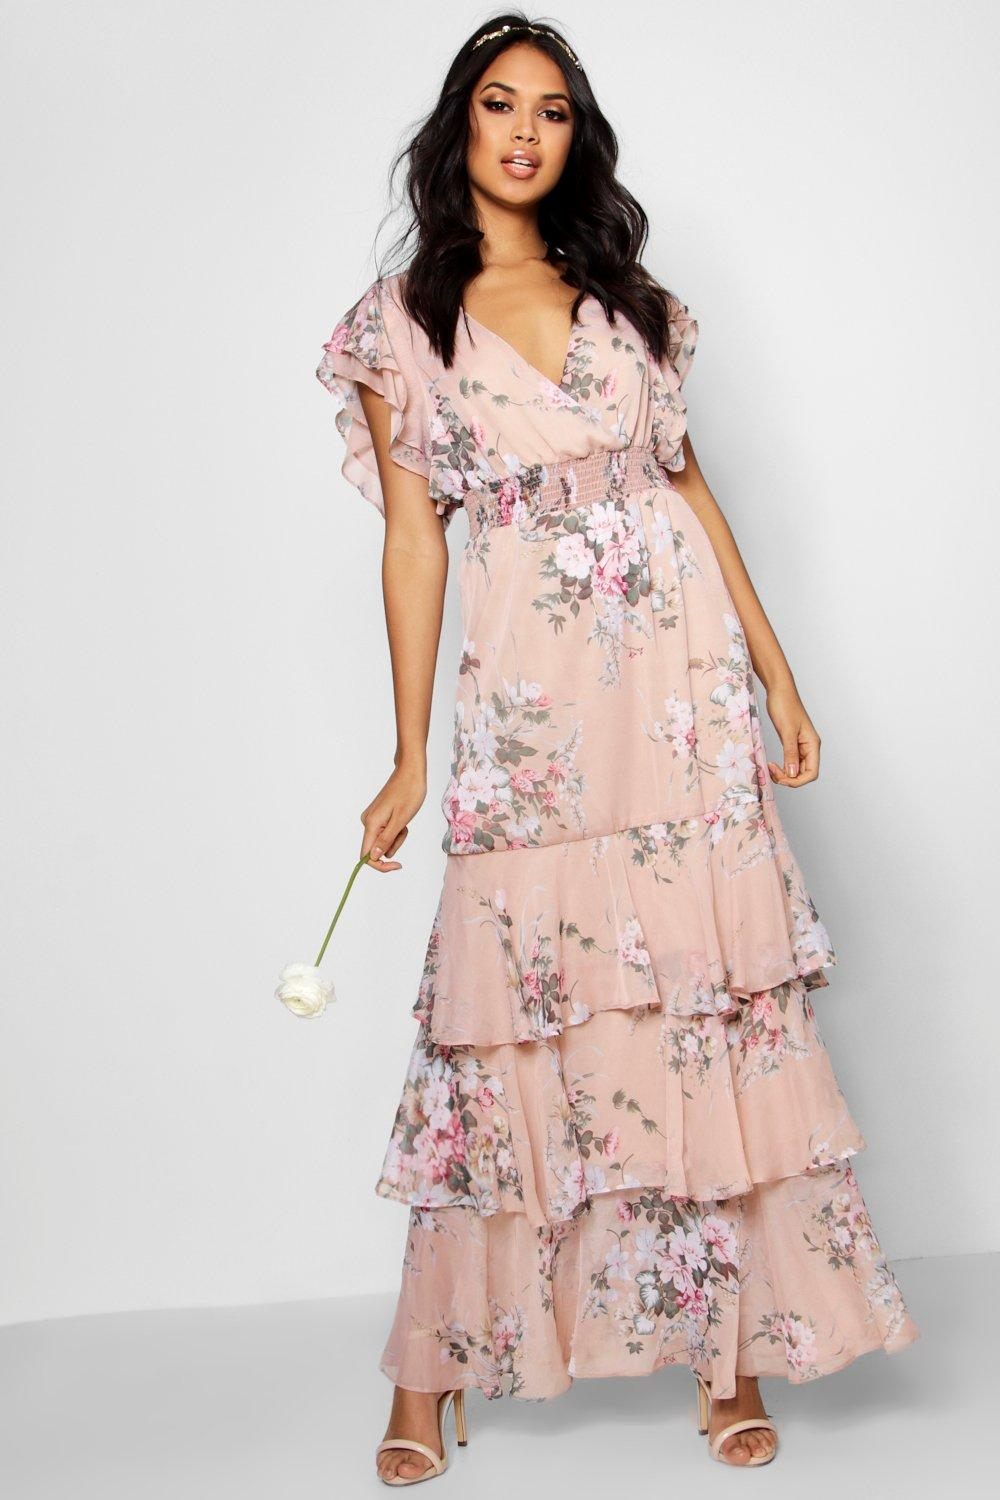 Boohoo - BoutiqueMol Vintage Floral Ruffle Maxi Dress$41 - AT BOOHOO